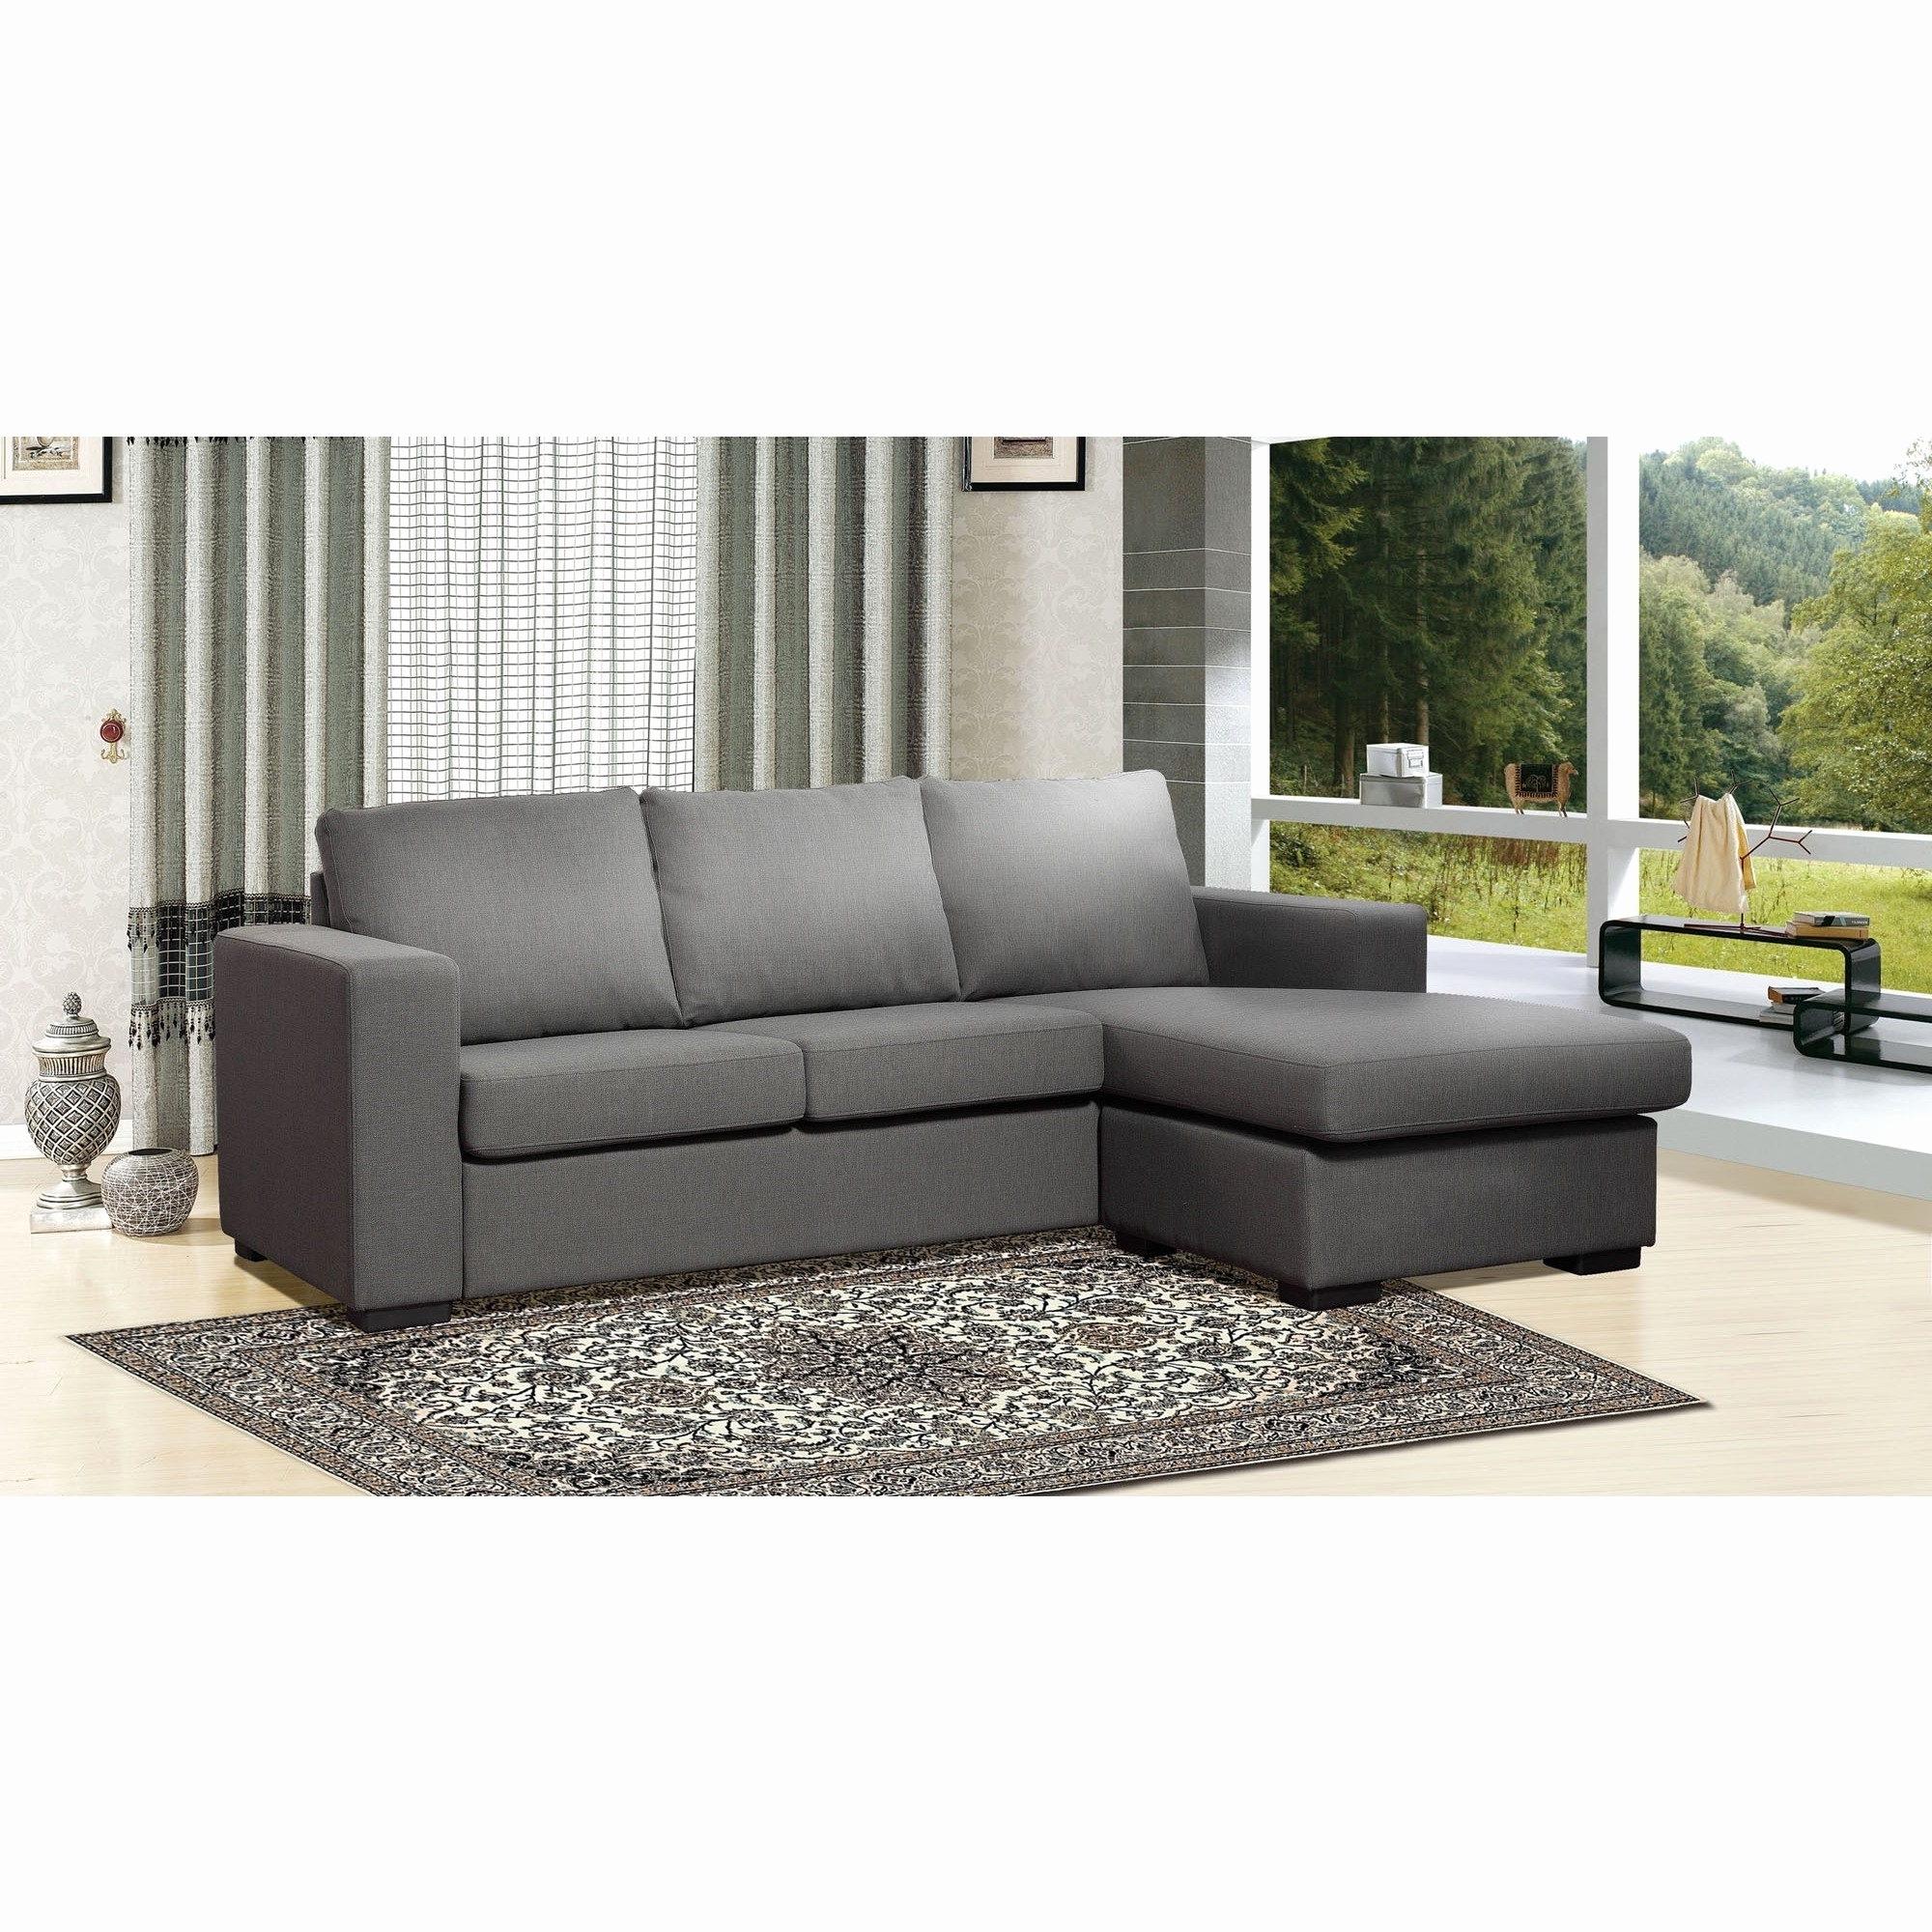 Most Popular Gray Sectional Sofas With Chaise Inside Unique Gray Sectional Sofa With Chaise 2018 – Couches Ideas (View 11 of 15)